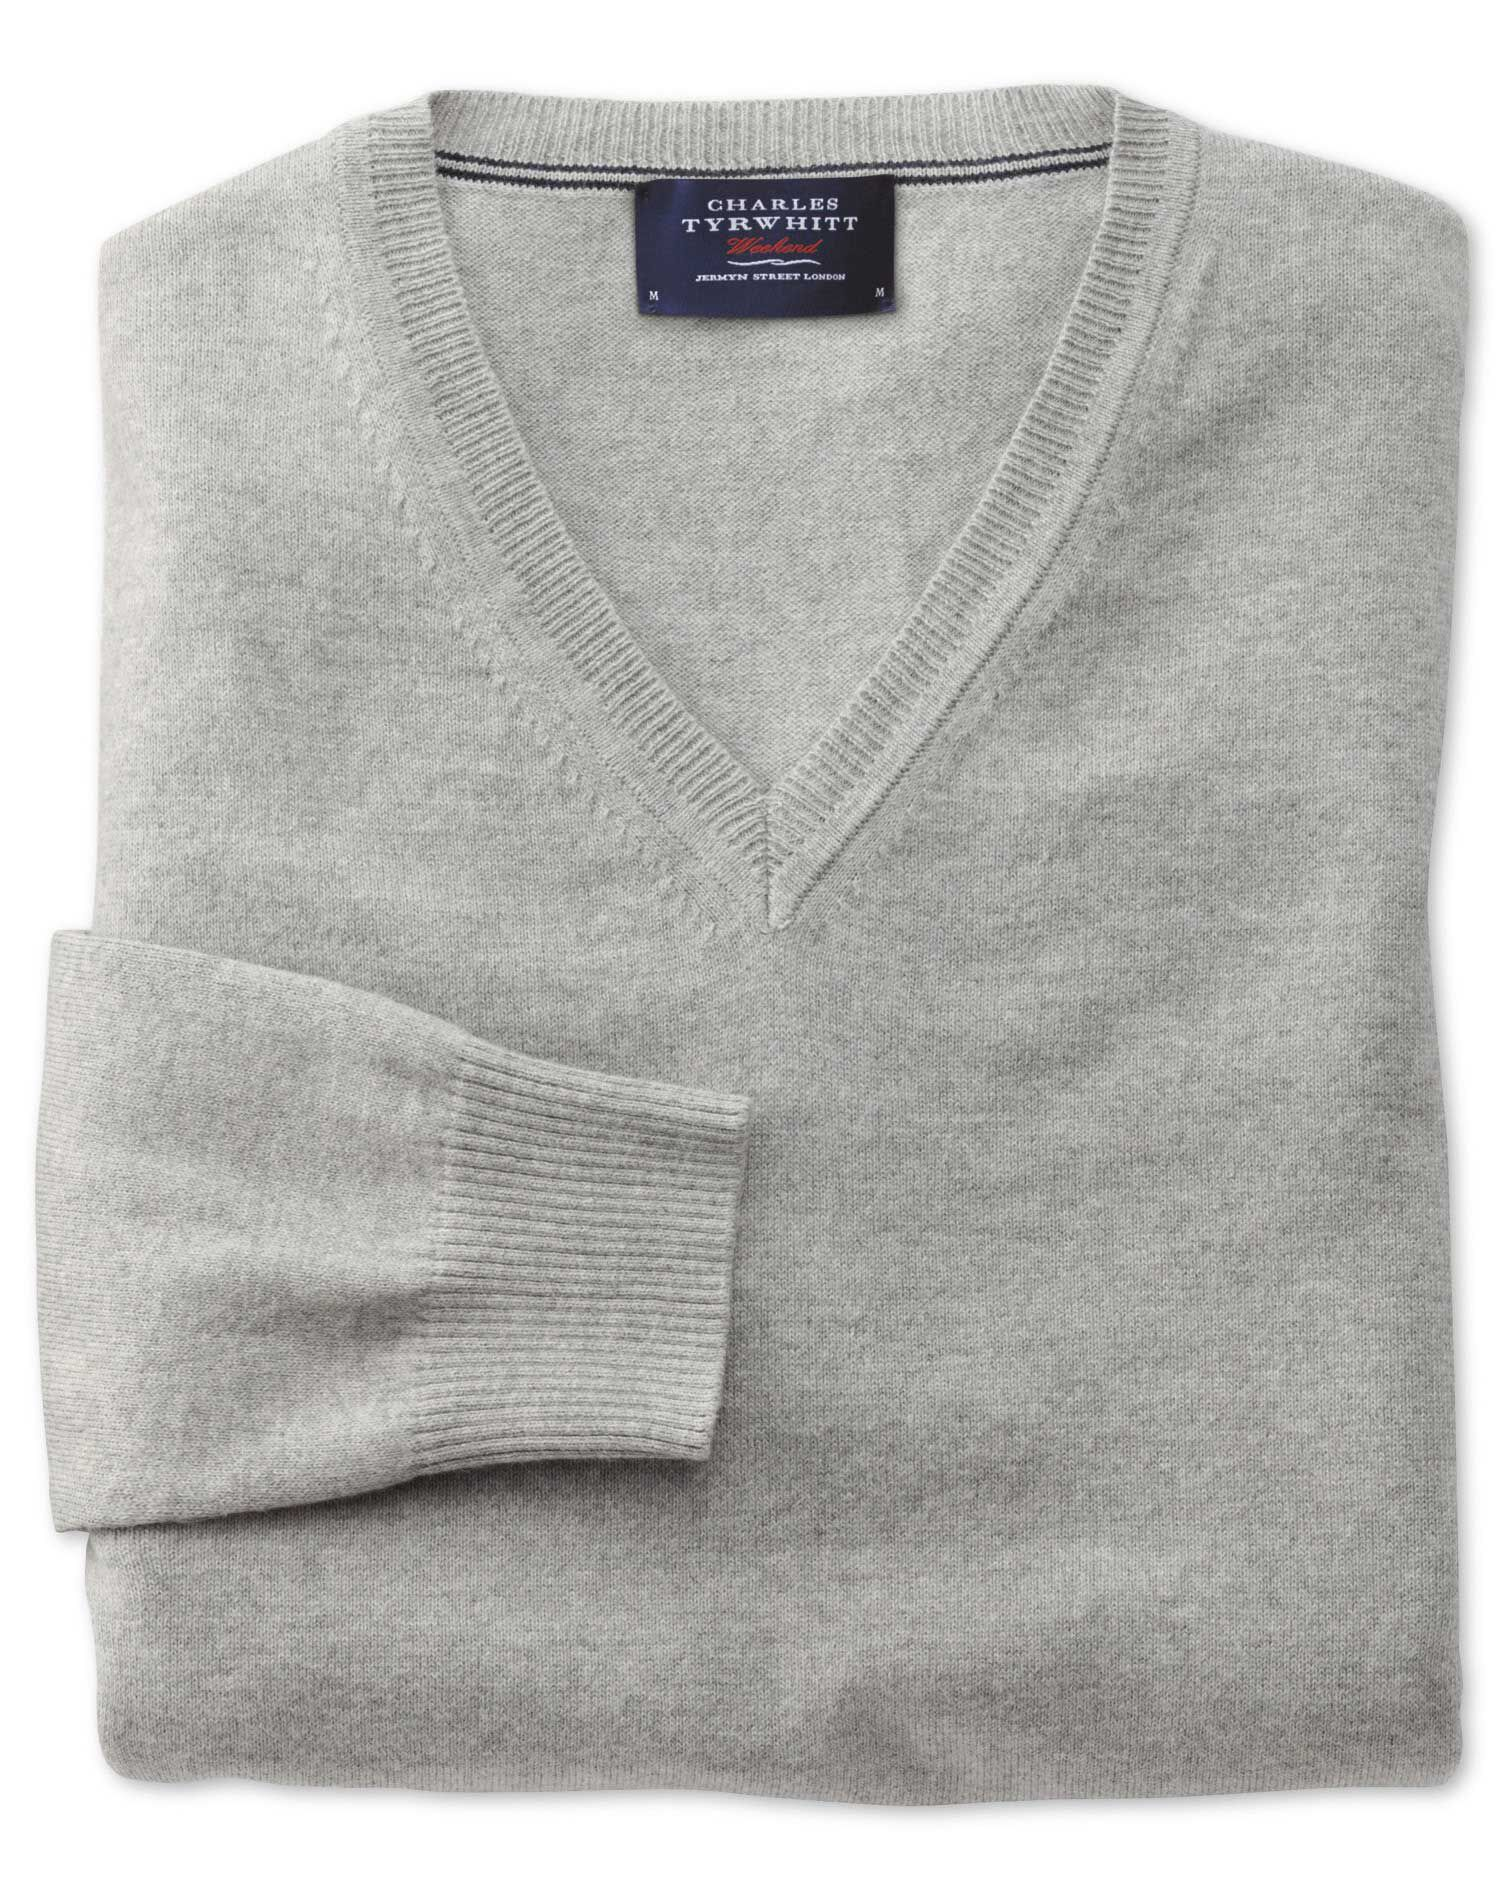 Light Grey Cotton Cashmere V-Neck Jumper Size XXL by Charles Tyrwhitt